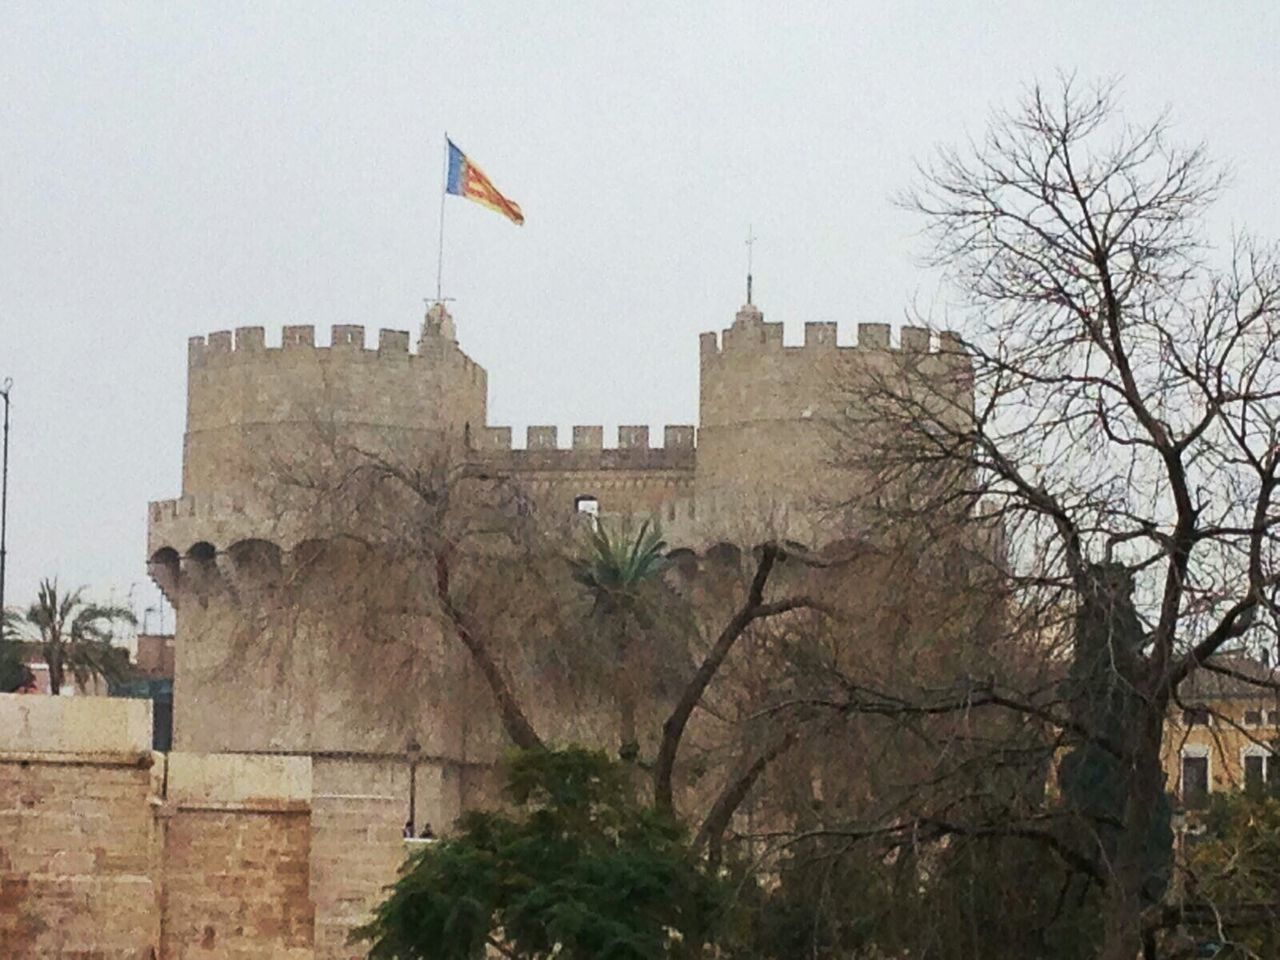 I have never taken the photo of these towers from this point. It is also a nice shot. Old Stones Old Tower Tower Old Architecture Winter Trees Spanish Winter Warm Winter Day Fortification Torres De Serrano Valencia, Spain